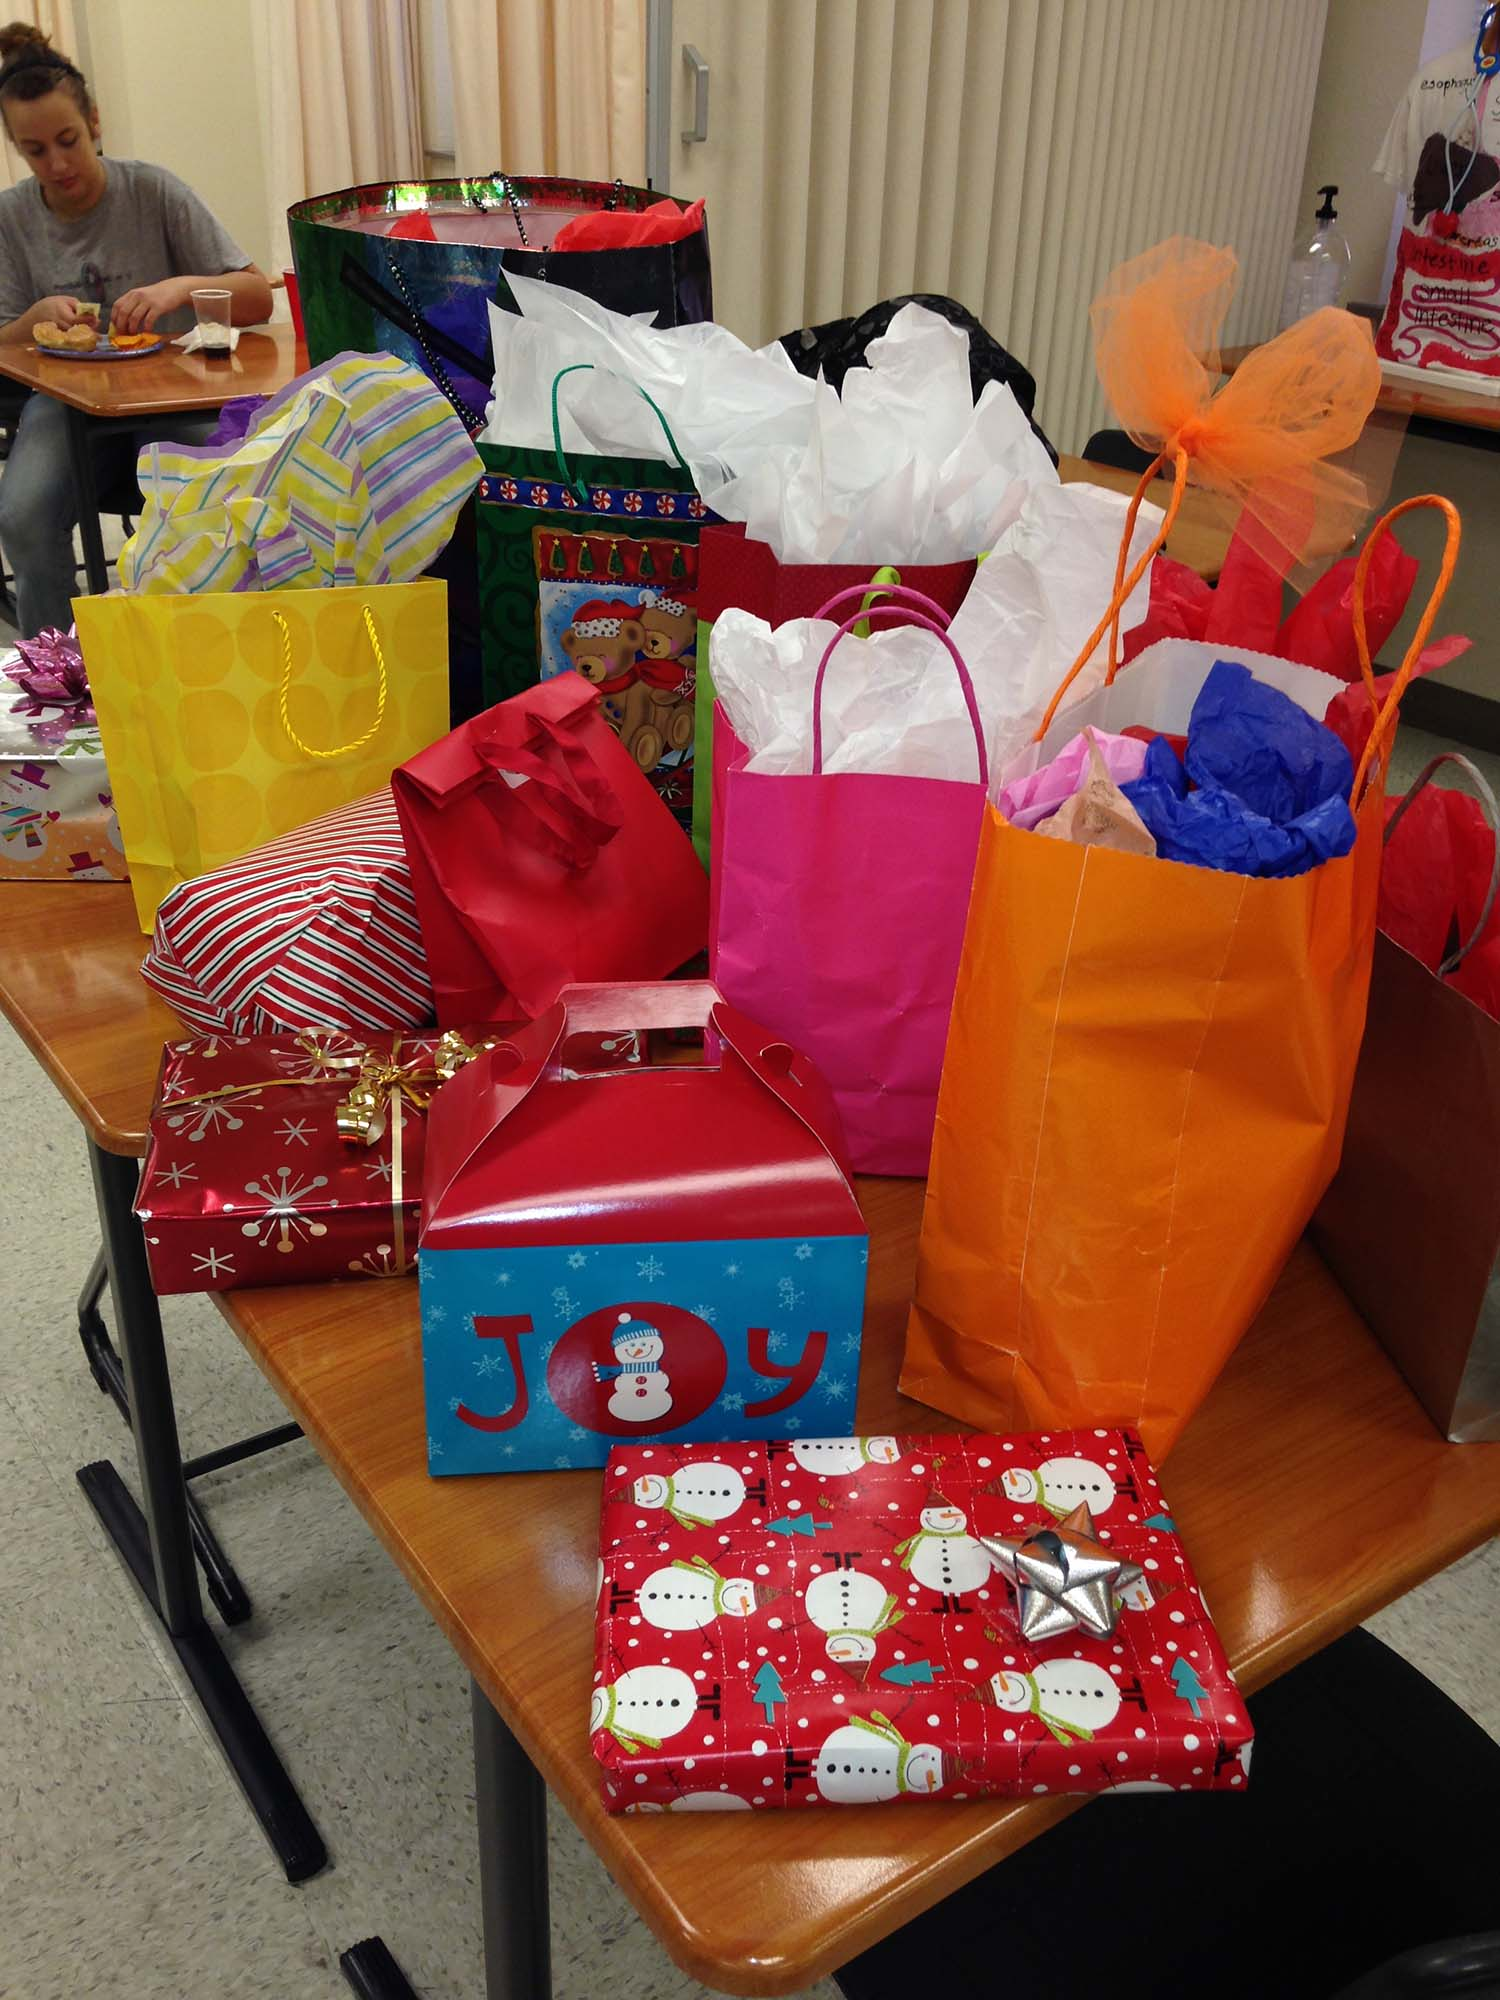 Many classes are having parties to celebrate the upcoming holidays and to relieve the stress of finals.